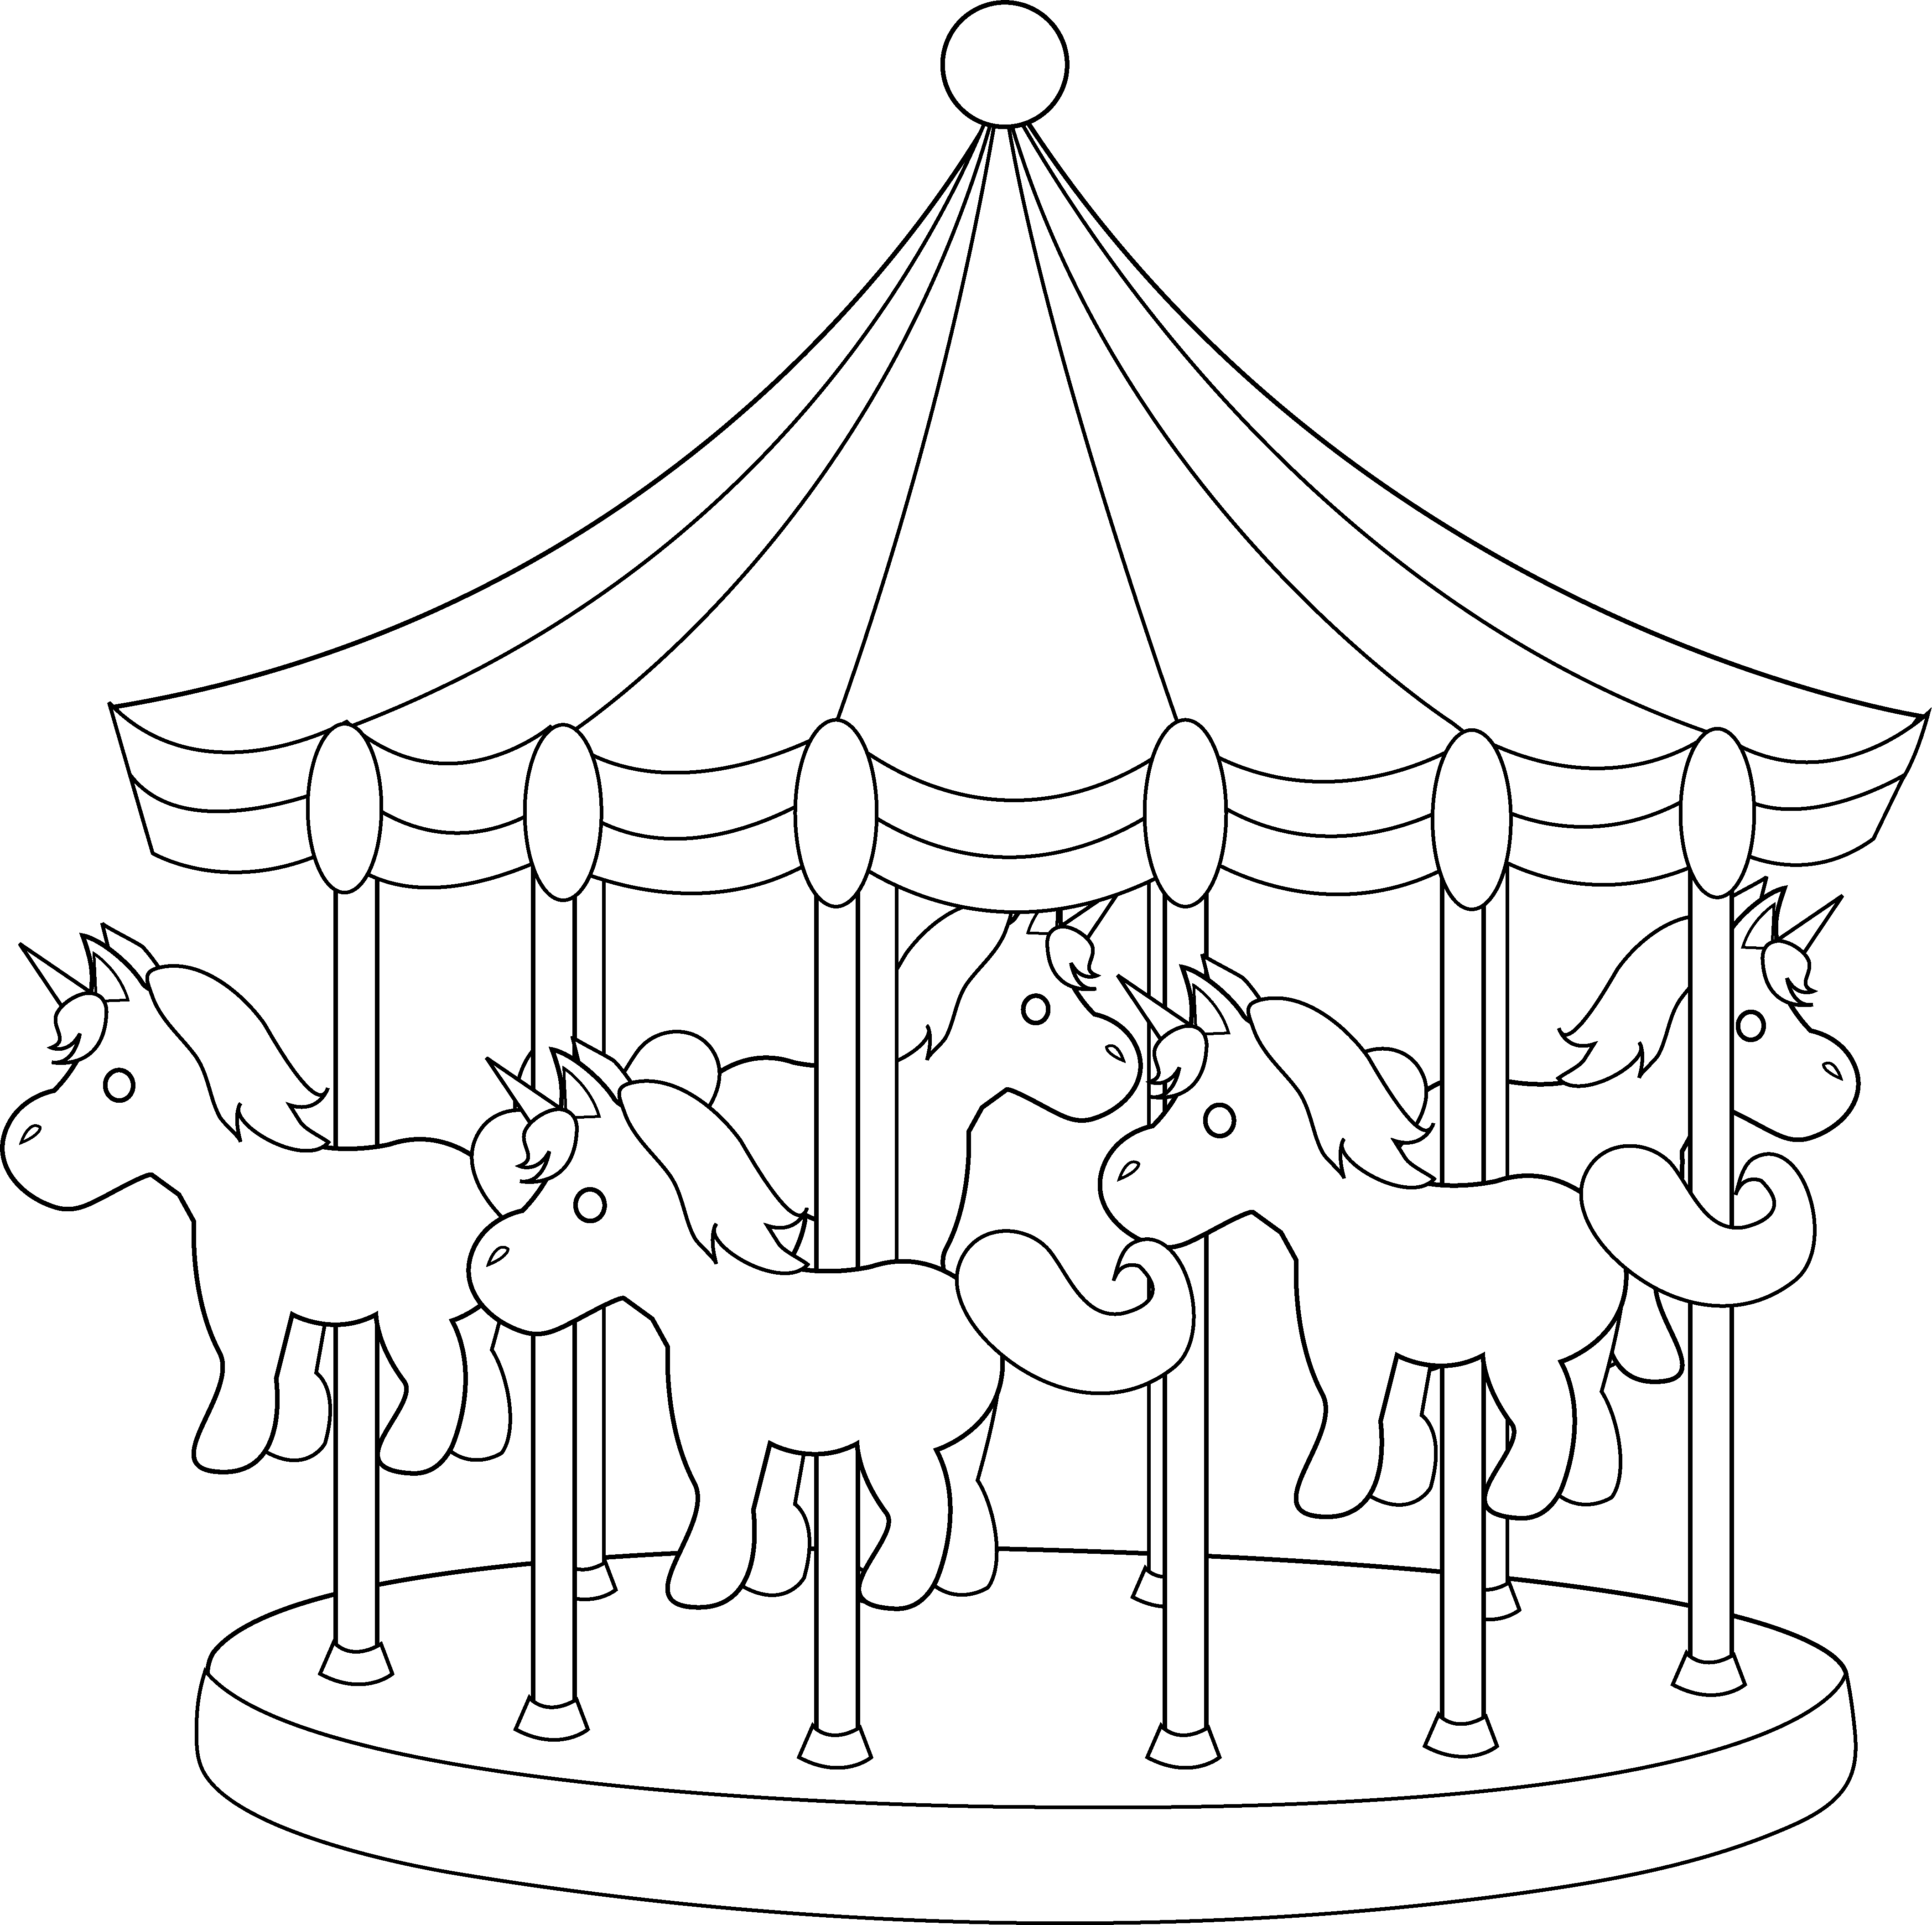 Carousel art free clip. Carnival clipart line